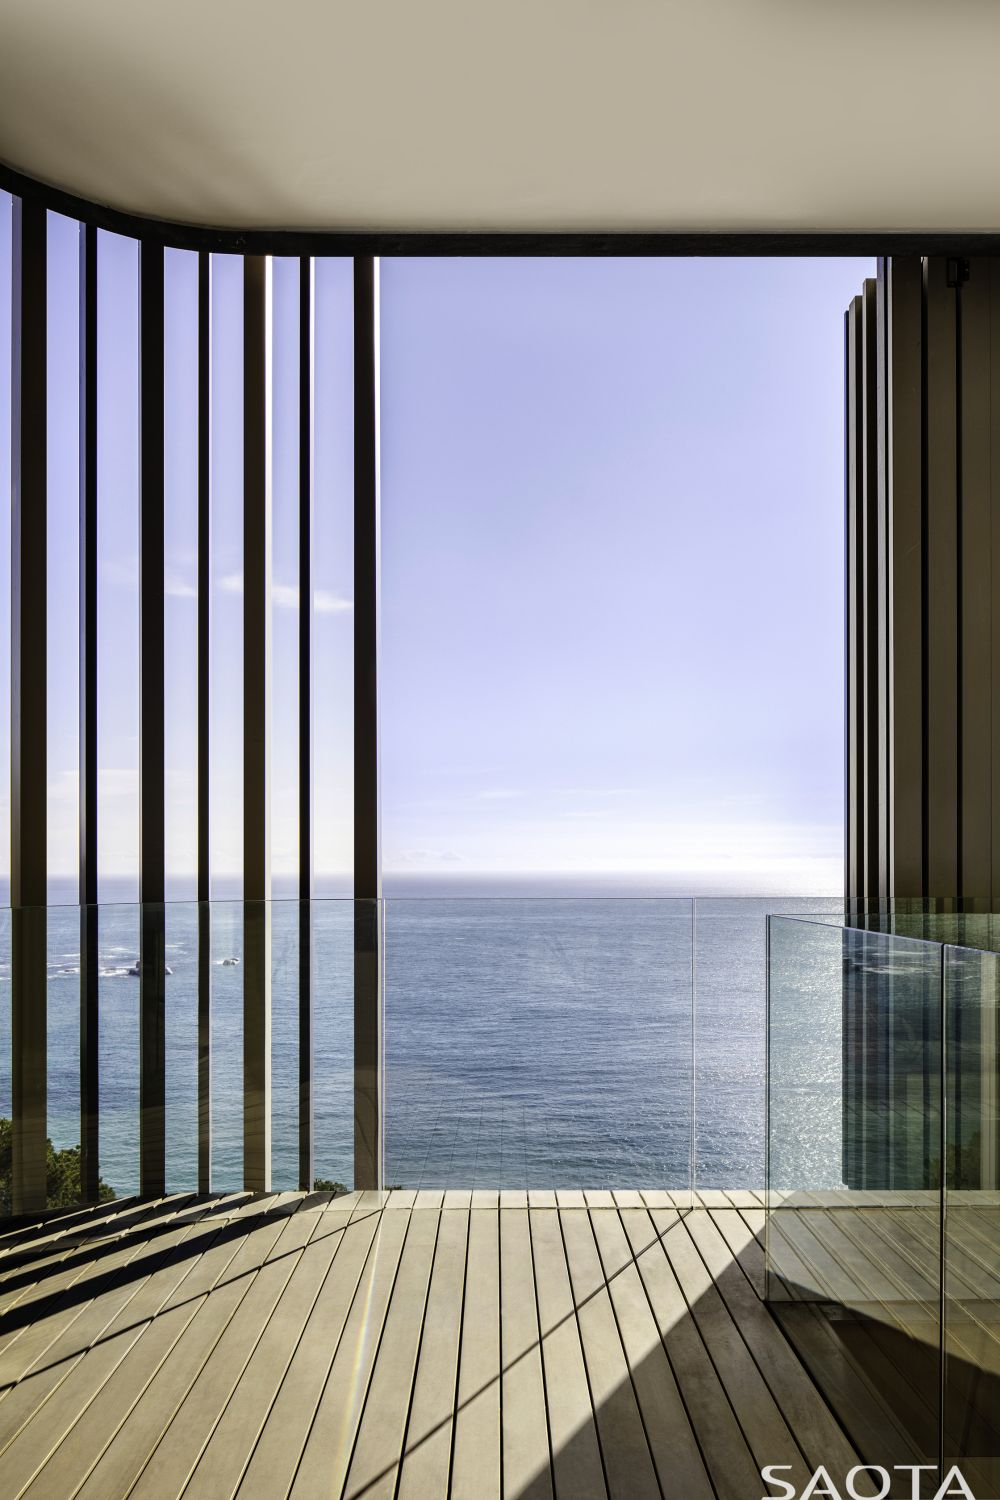 All sections of the house enjoy panoramic views of their surroundings, including views towards the ocean